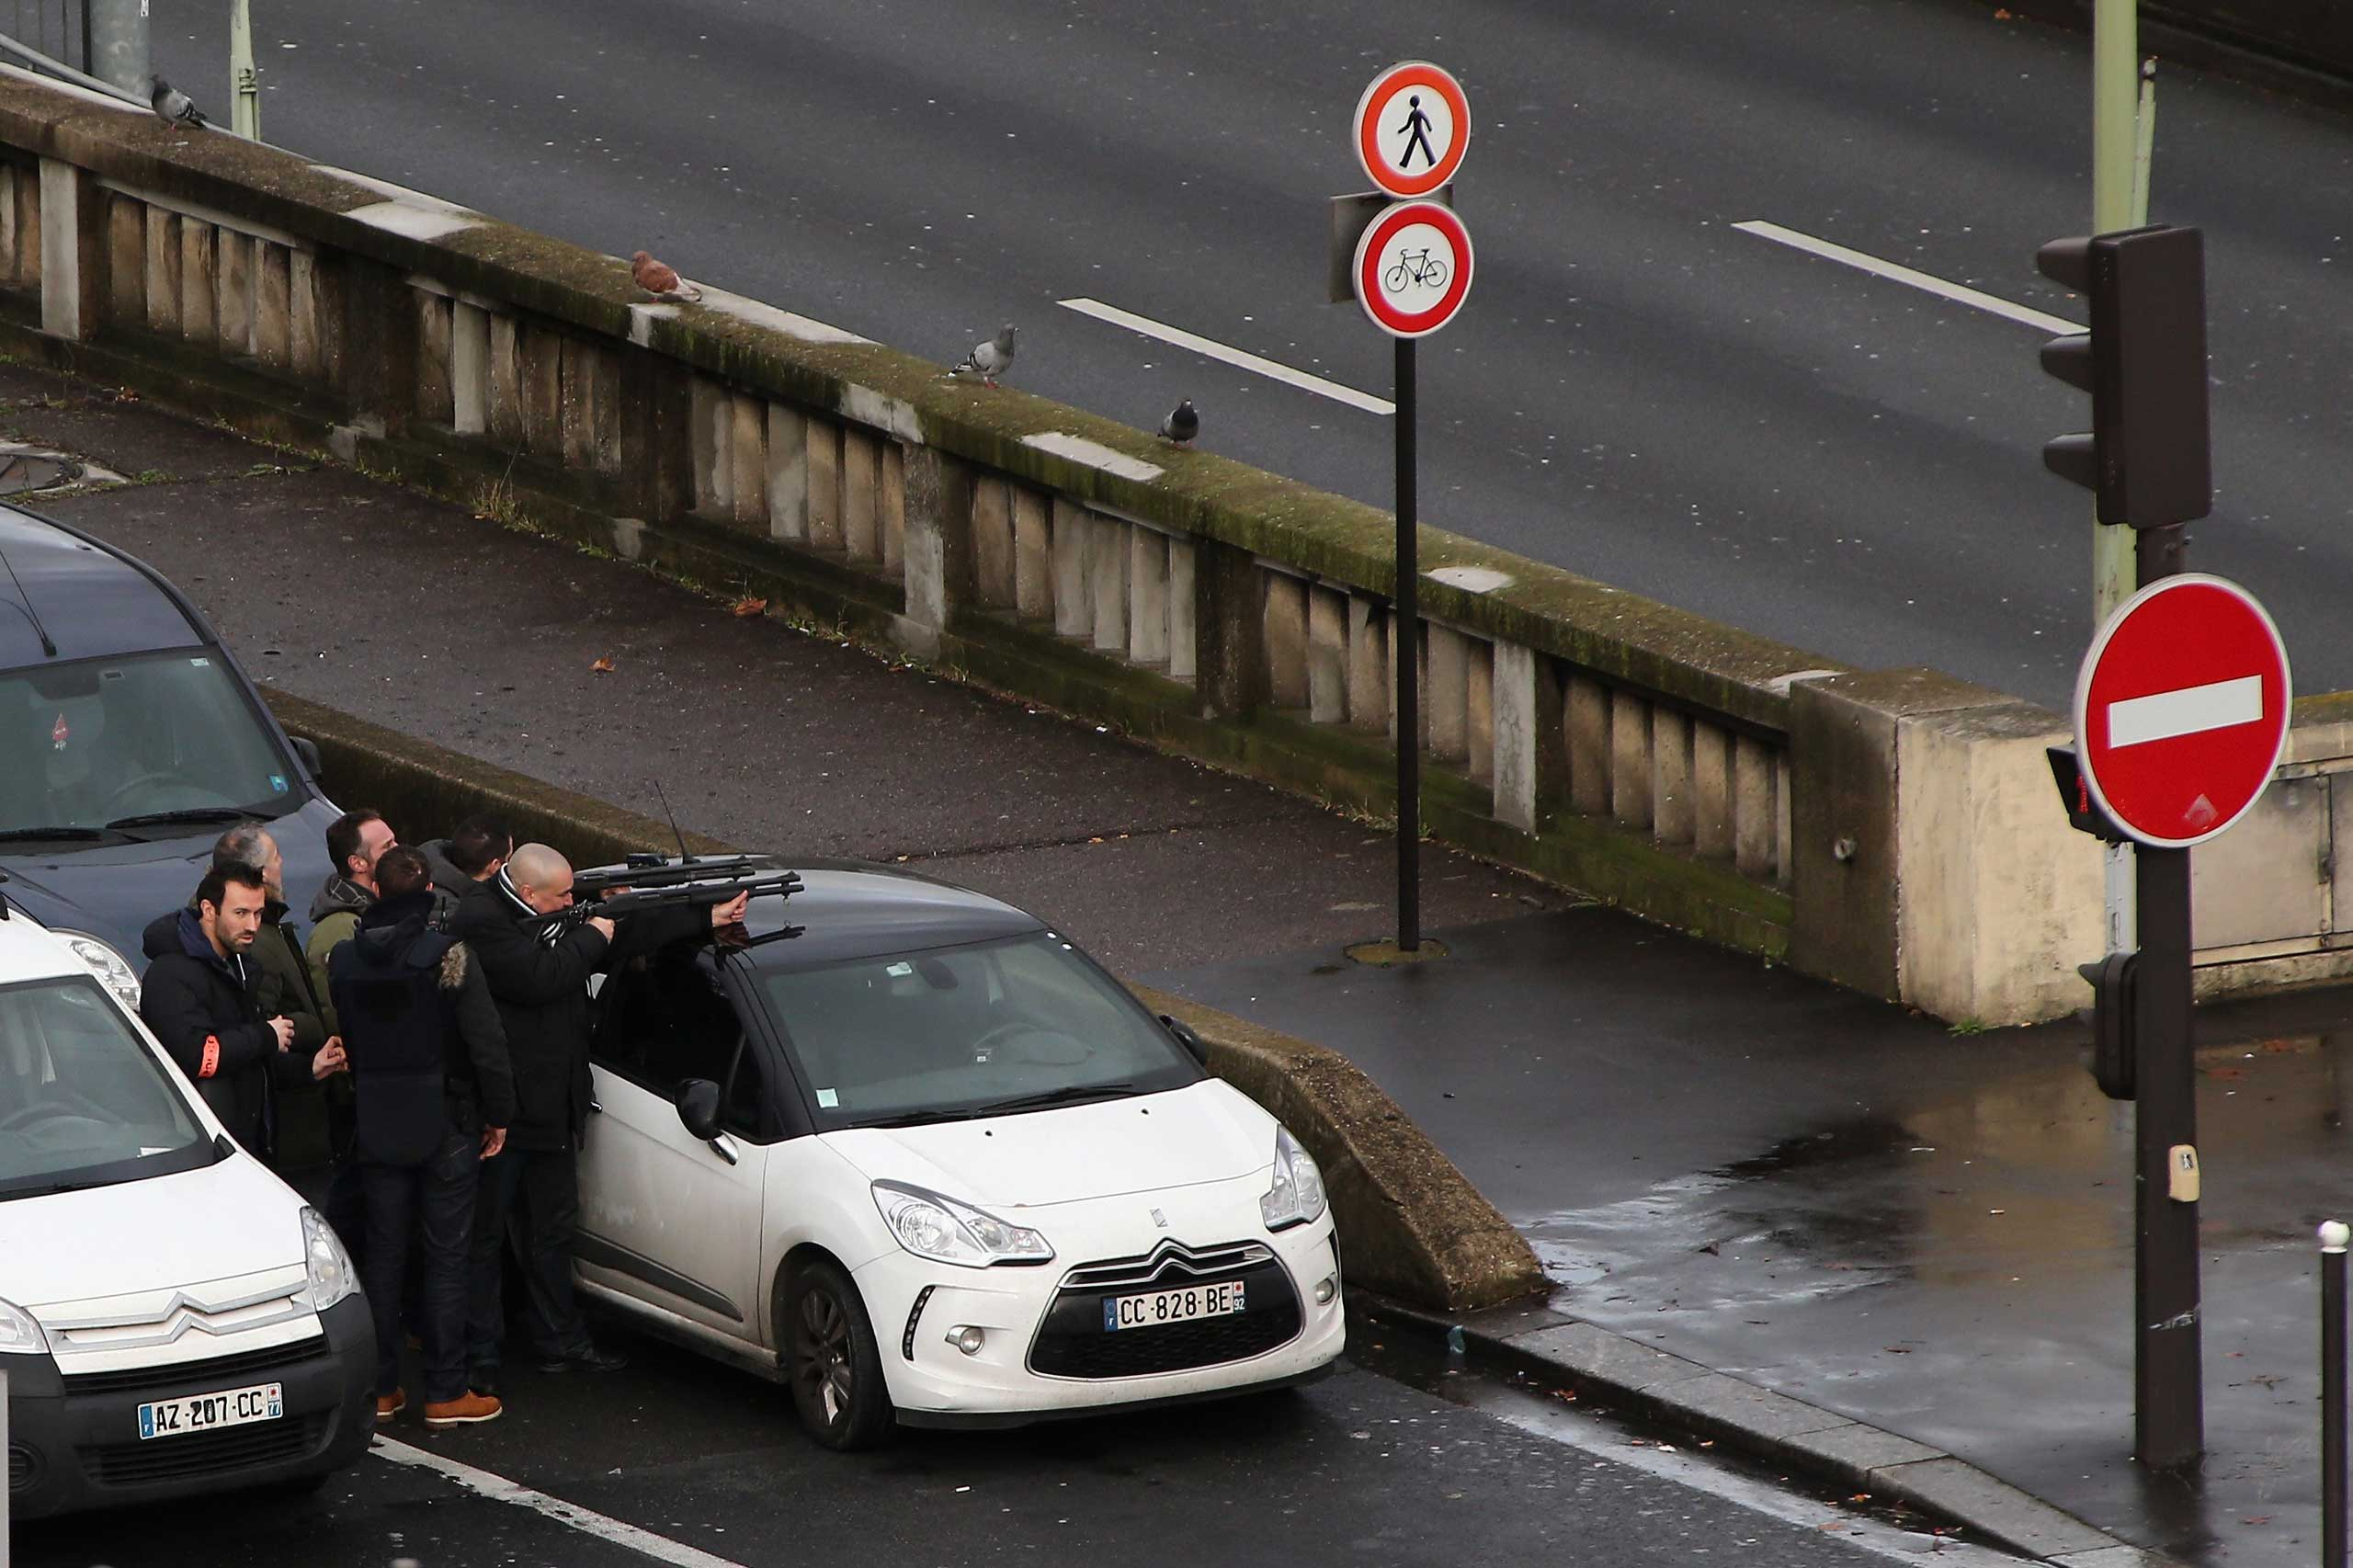 Police are mobilized with reports of a hostage situation at Port de Vincennes on Jan.  9, 2015 in Paris.